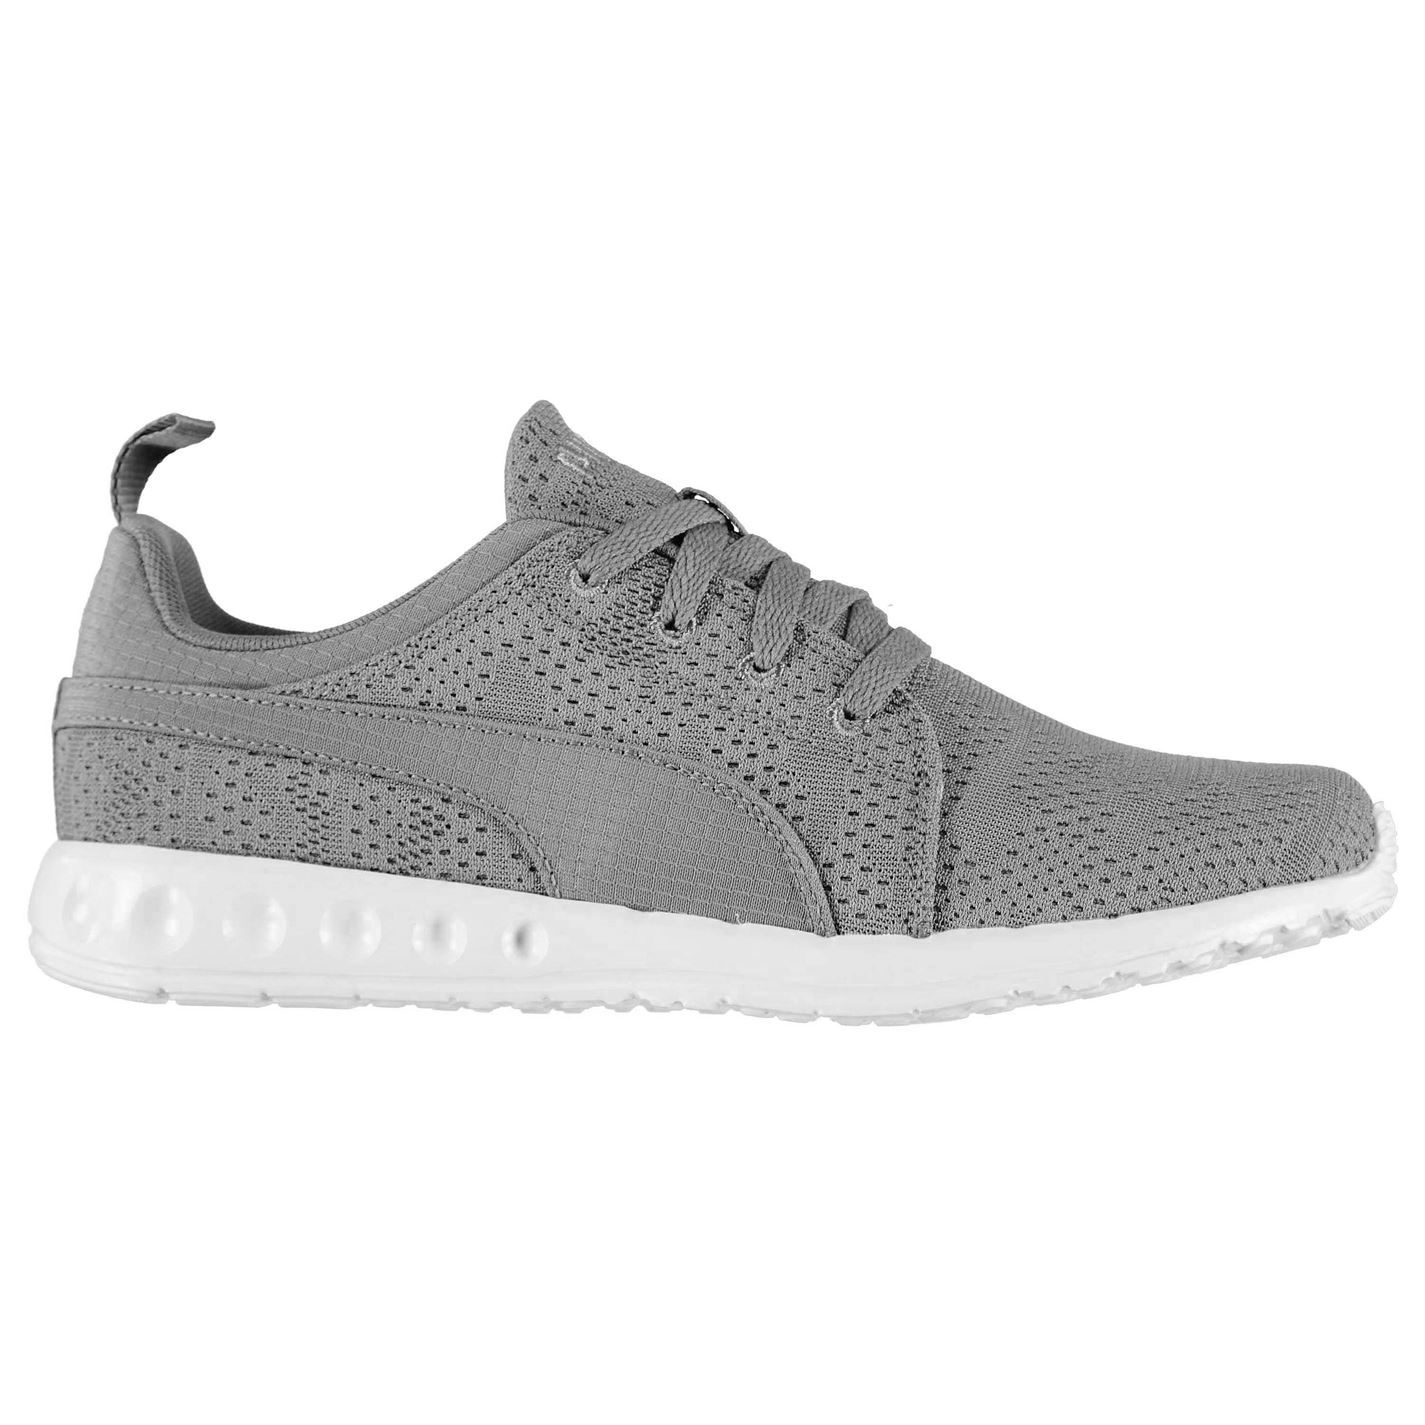 ... Puma Carson Running Shoes Mens Green White Jogging Trainers Sneakers ... 20176a7a9